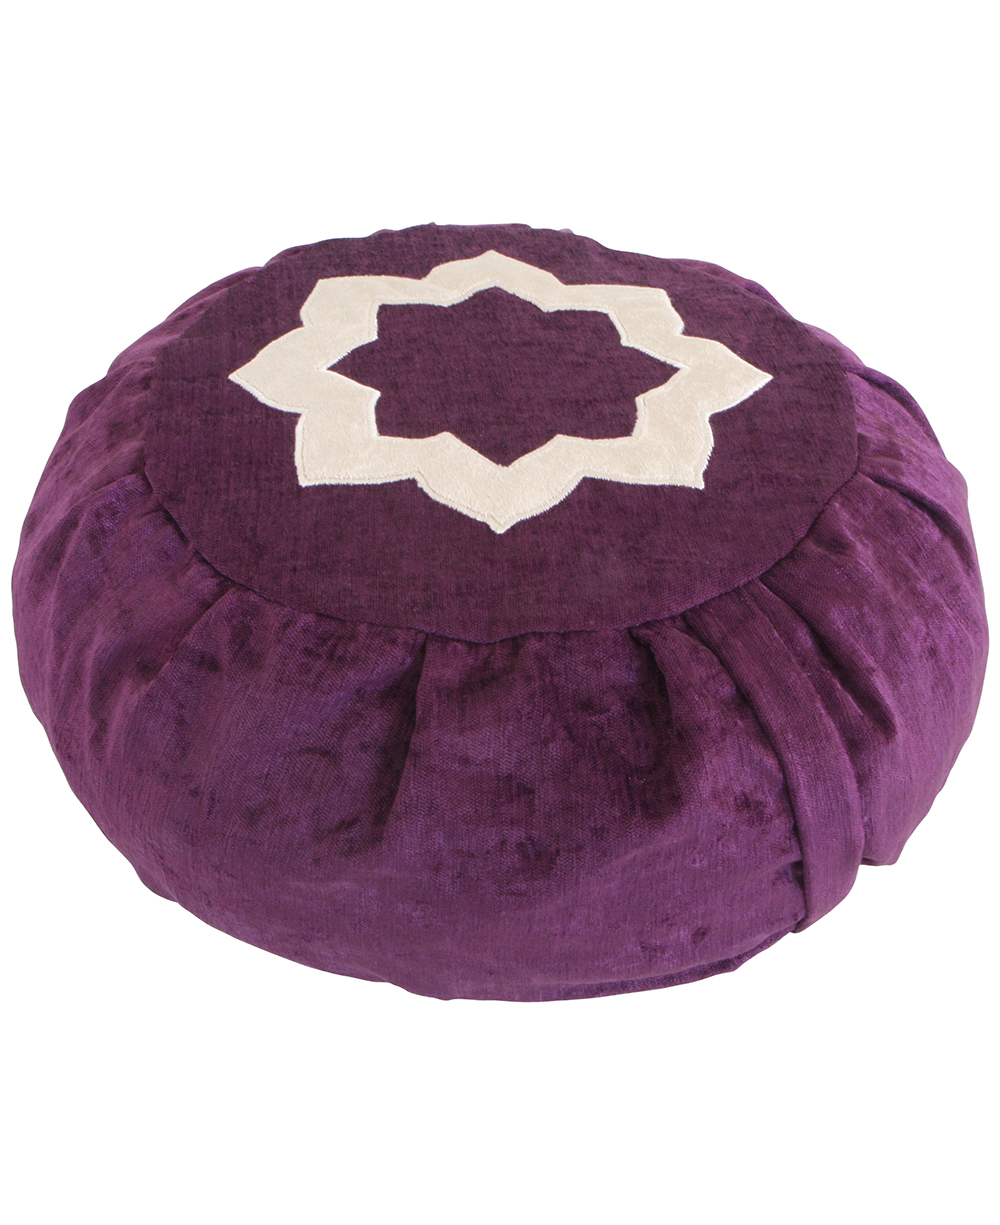 purple lotus meditation cushion